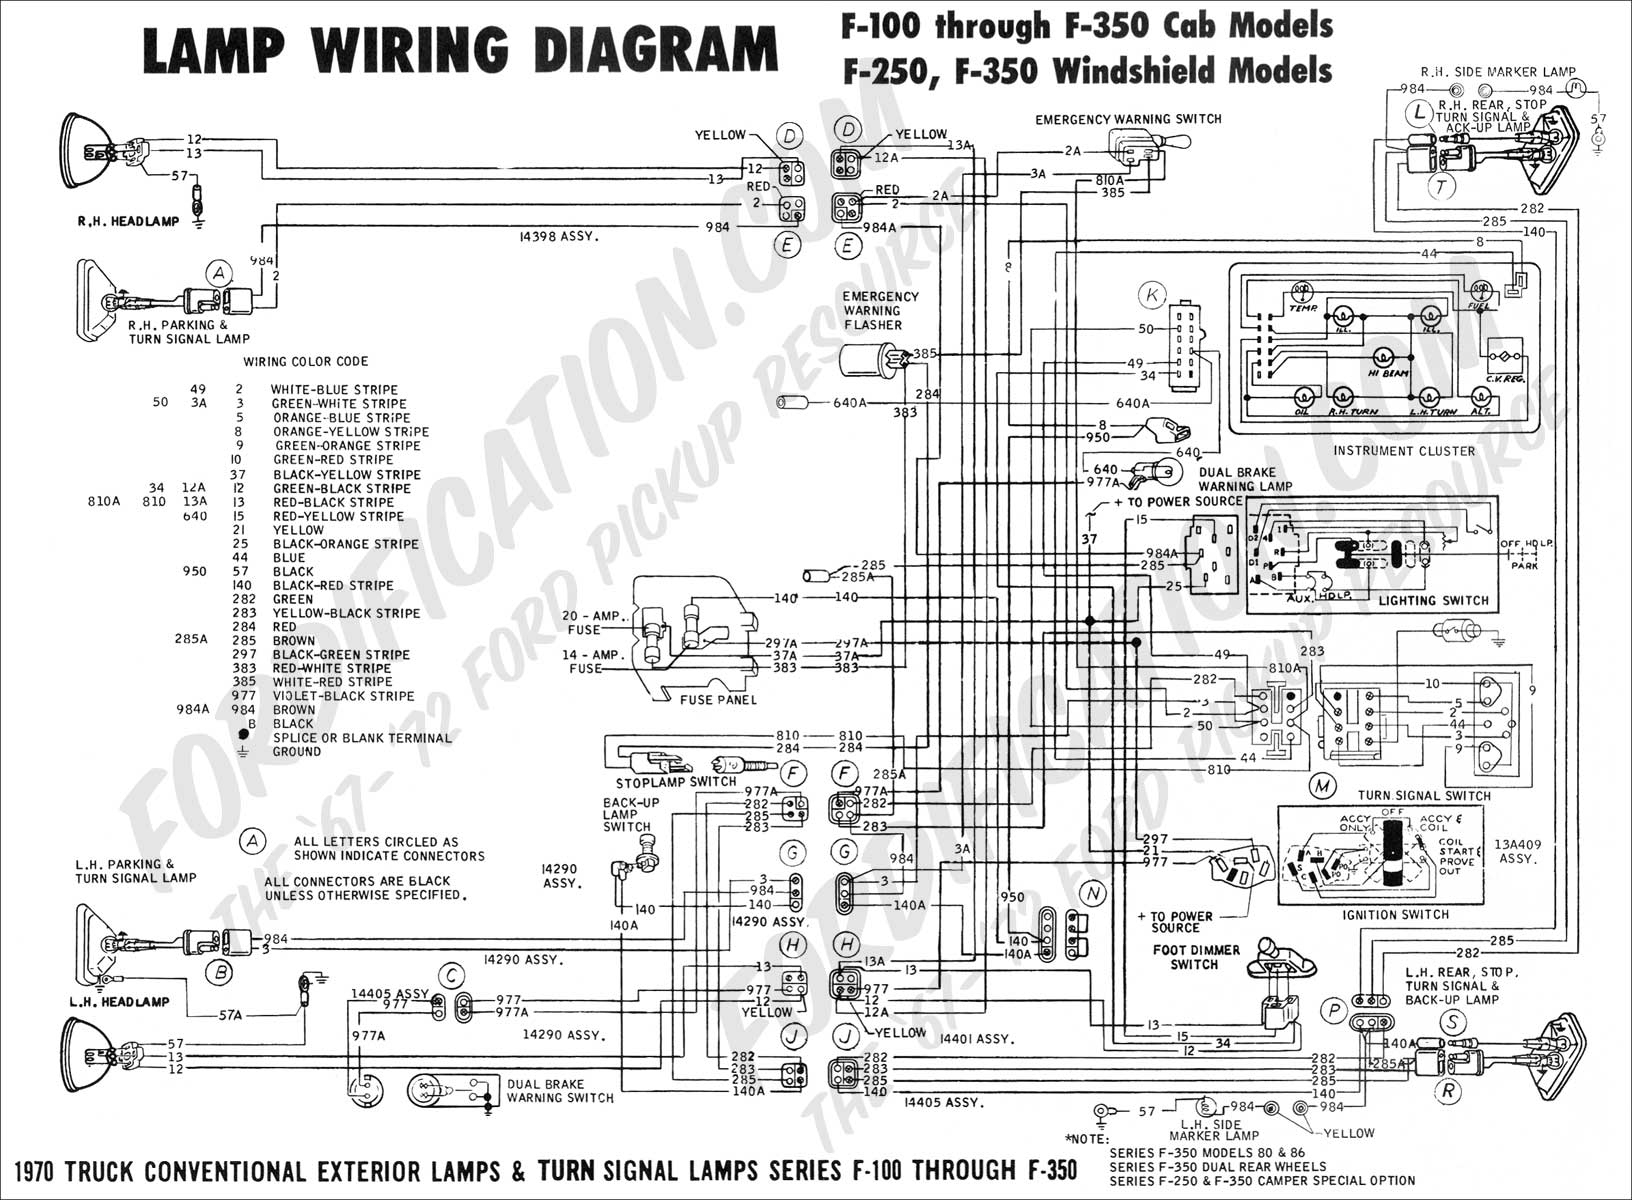 1972 Ford Fuse Box | Wiring Library - Wiring Diagram For Utility Trailer With Electric Brakes